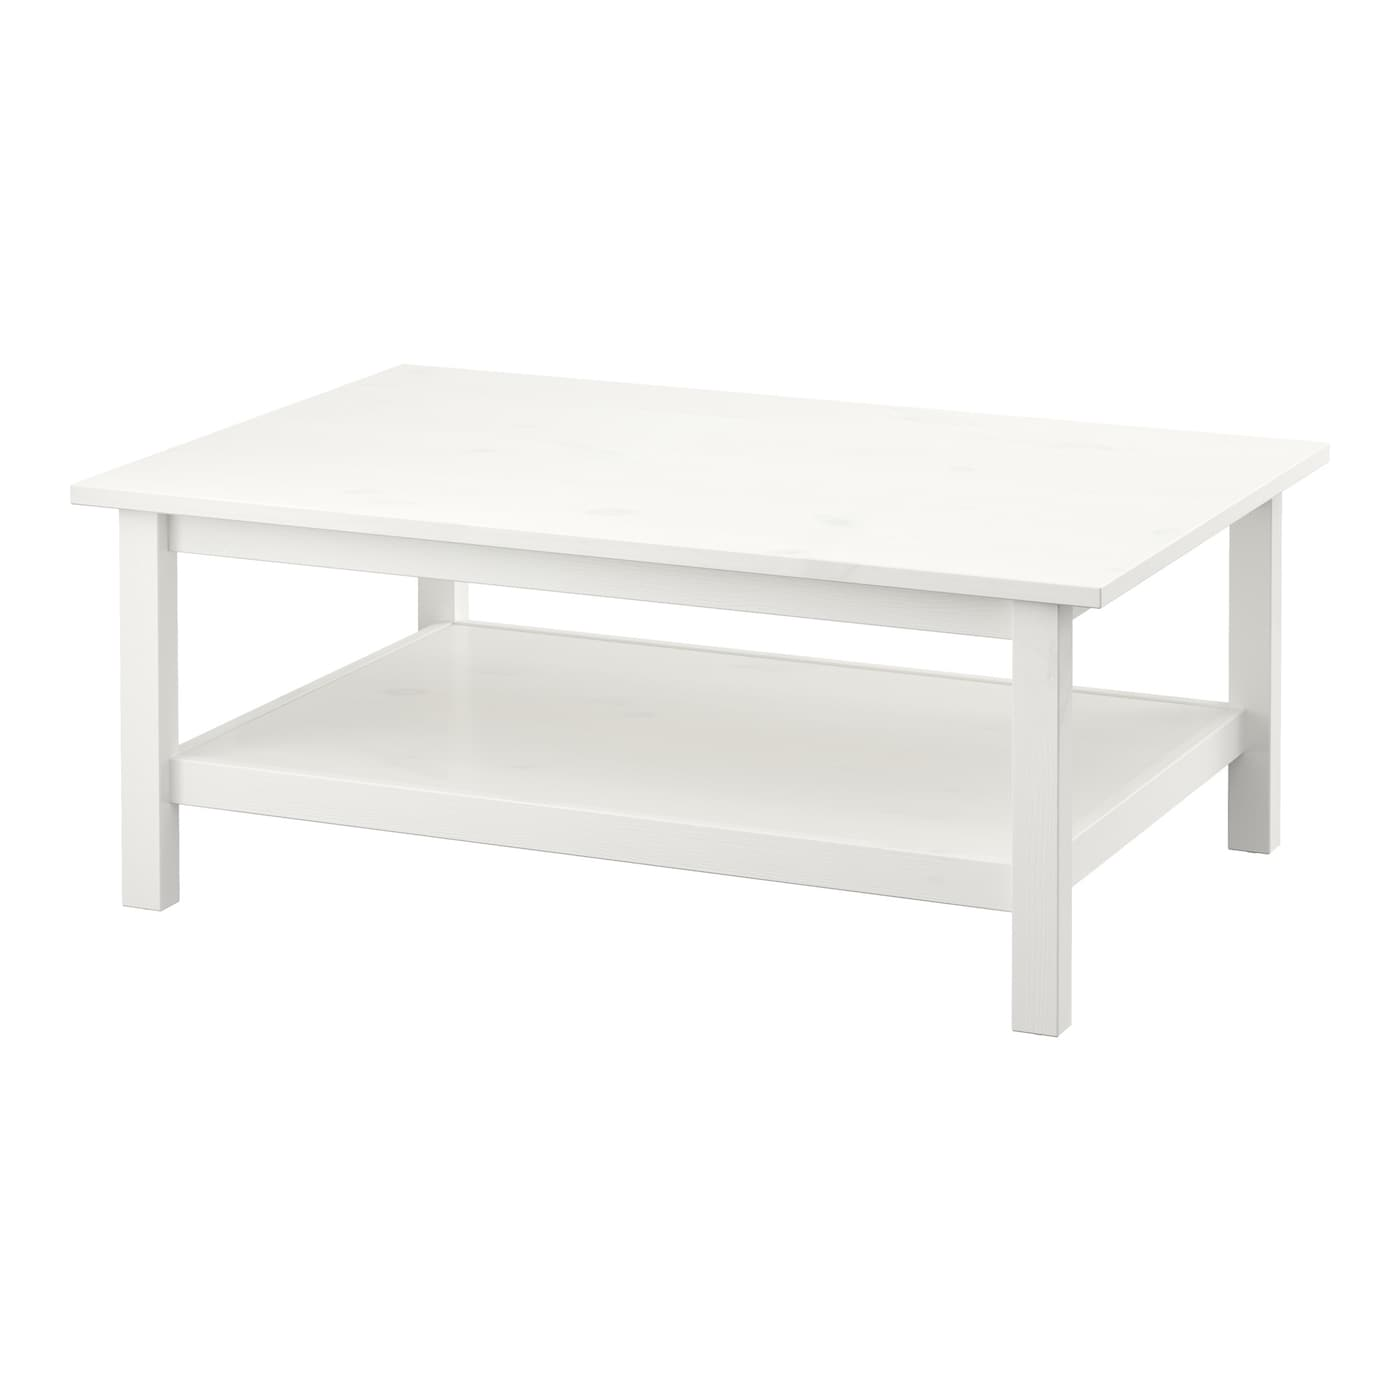 Hemnes Coffee Table Light Brown 118x75 Cm: HEMNES Coffee Table White Stain 118 X 75 Cm